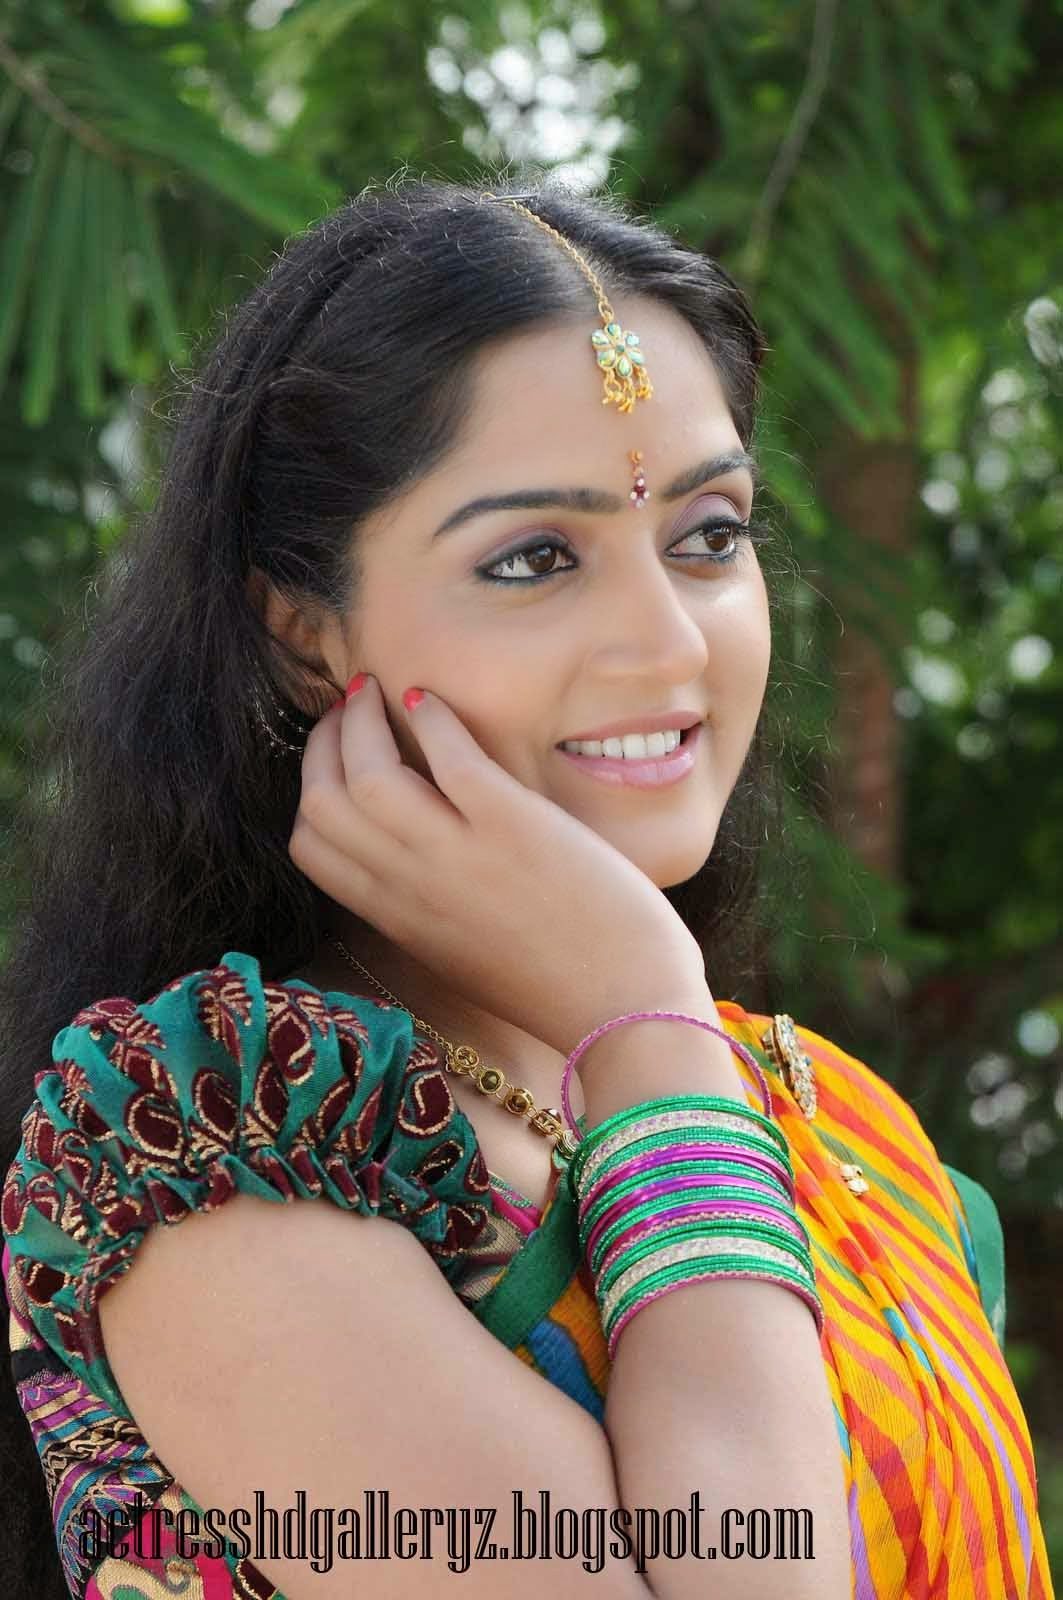 D, Divya Singh, Divya Singh Hot pics, Actress HD Photo Gallery, HD Actress Gallery, latest Actress HD Photo Gallery, Latest actress Stills, Tamil Actress, Tamil Actress photo Gallery, Half Sari photo Stills, Indian Actress, Actress, Dear Swapna movie actress Divya Singh latest Half saree Stills